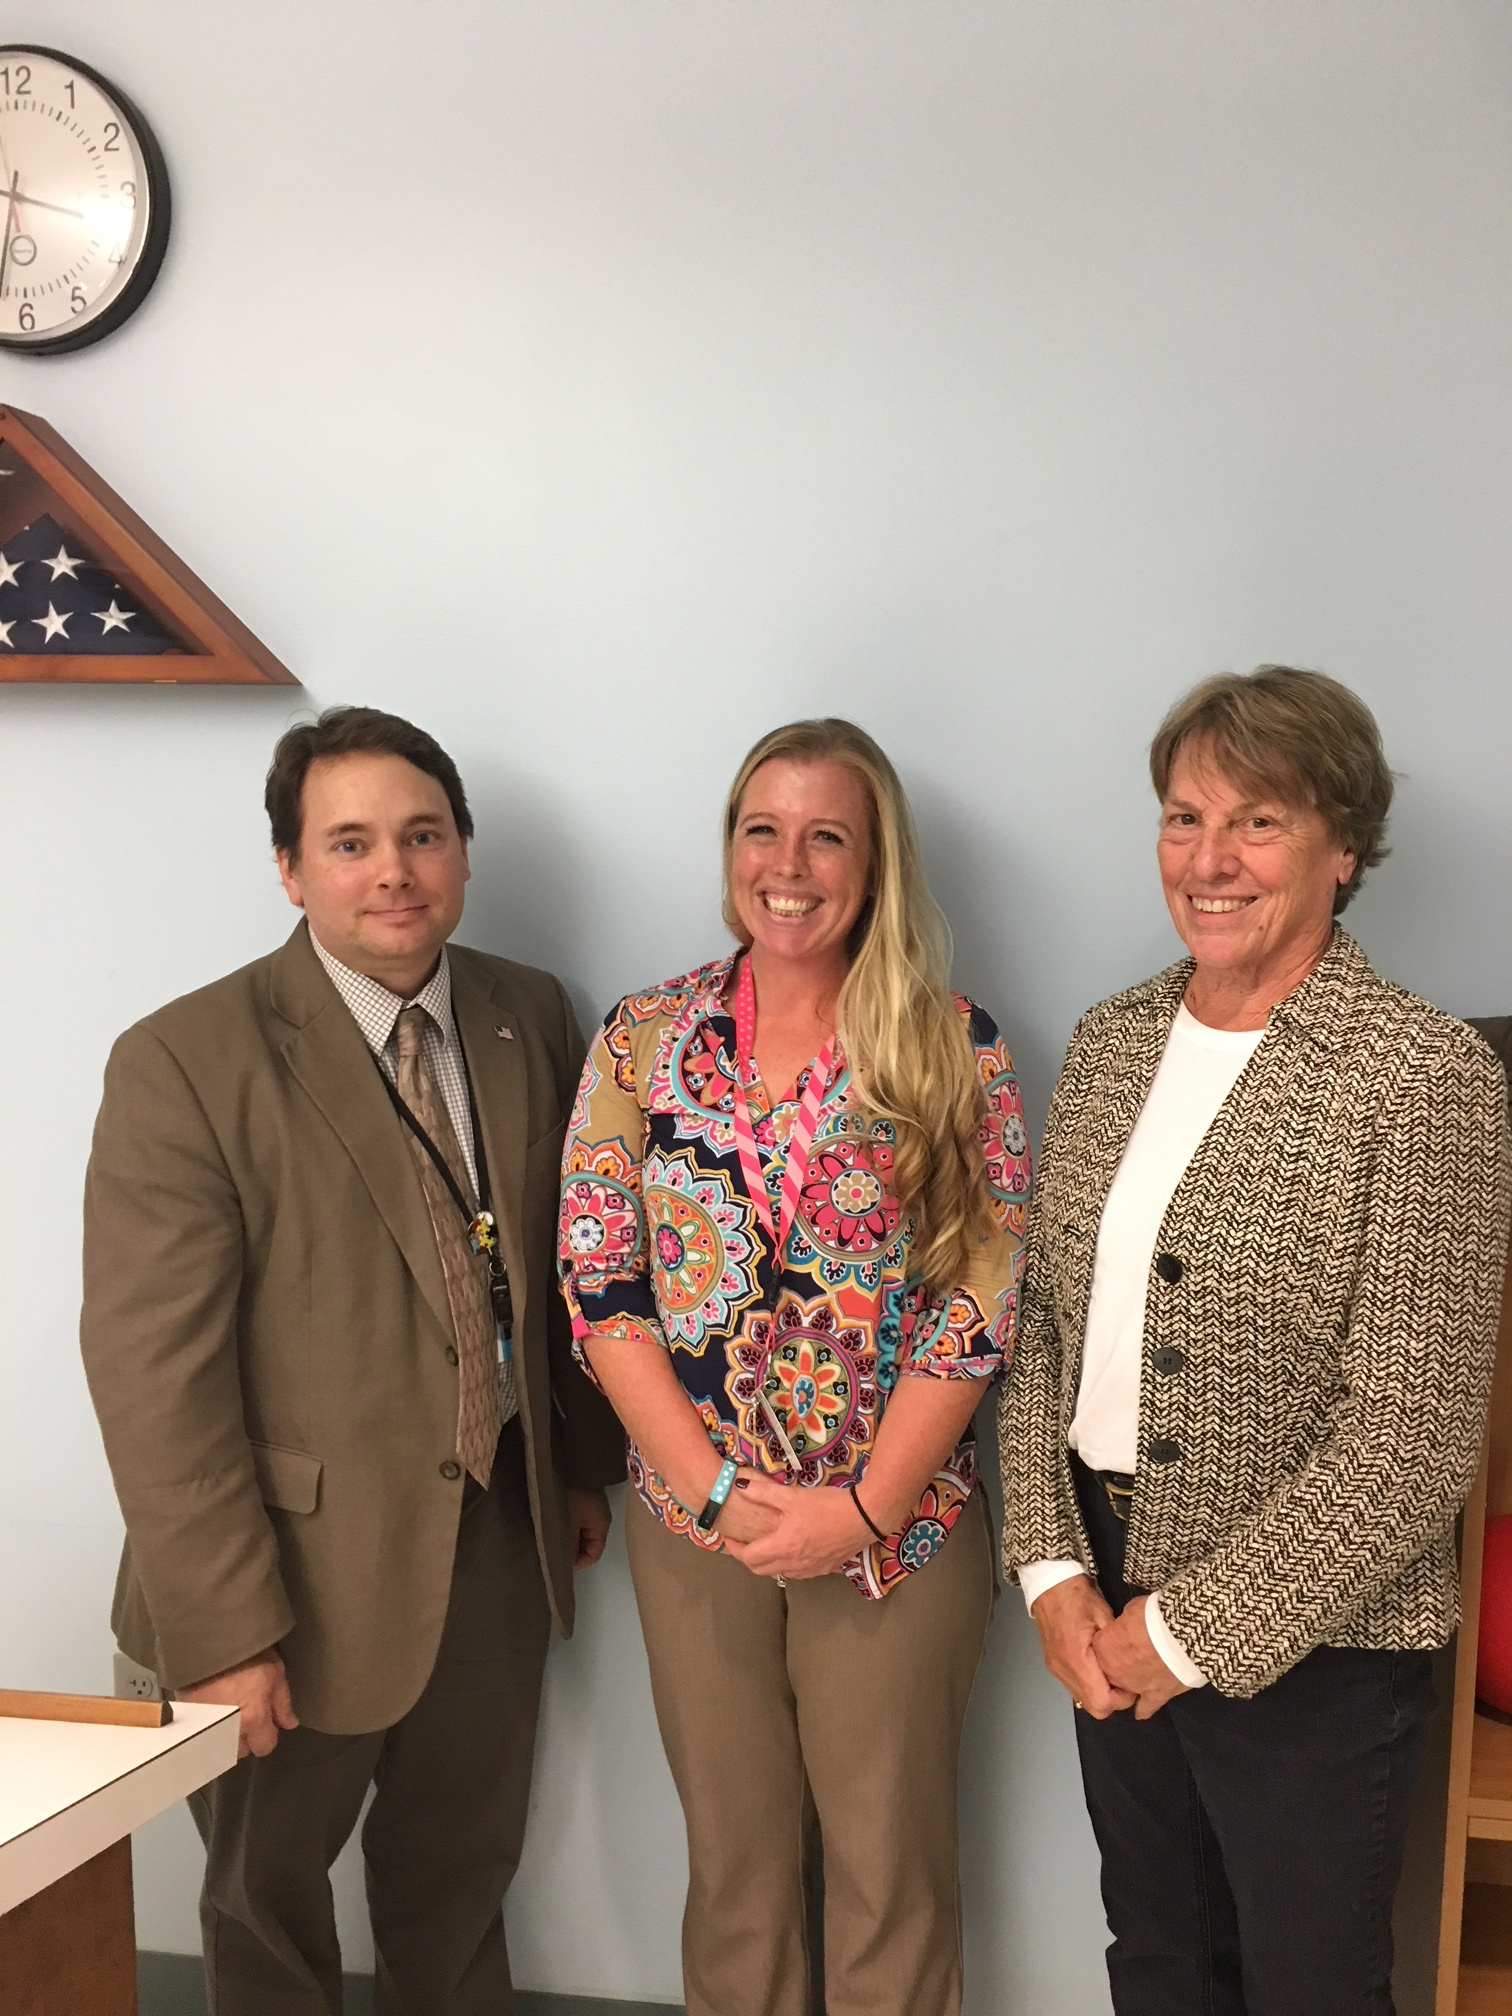 Pictured: WPS Principal Patrick Boodey, Katie Gorski and SEED Board Member Cynthia Theodoras